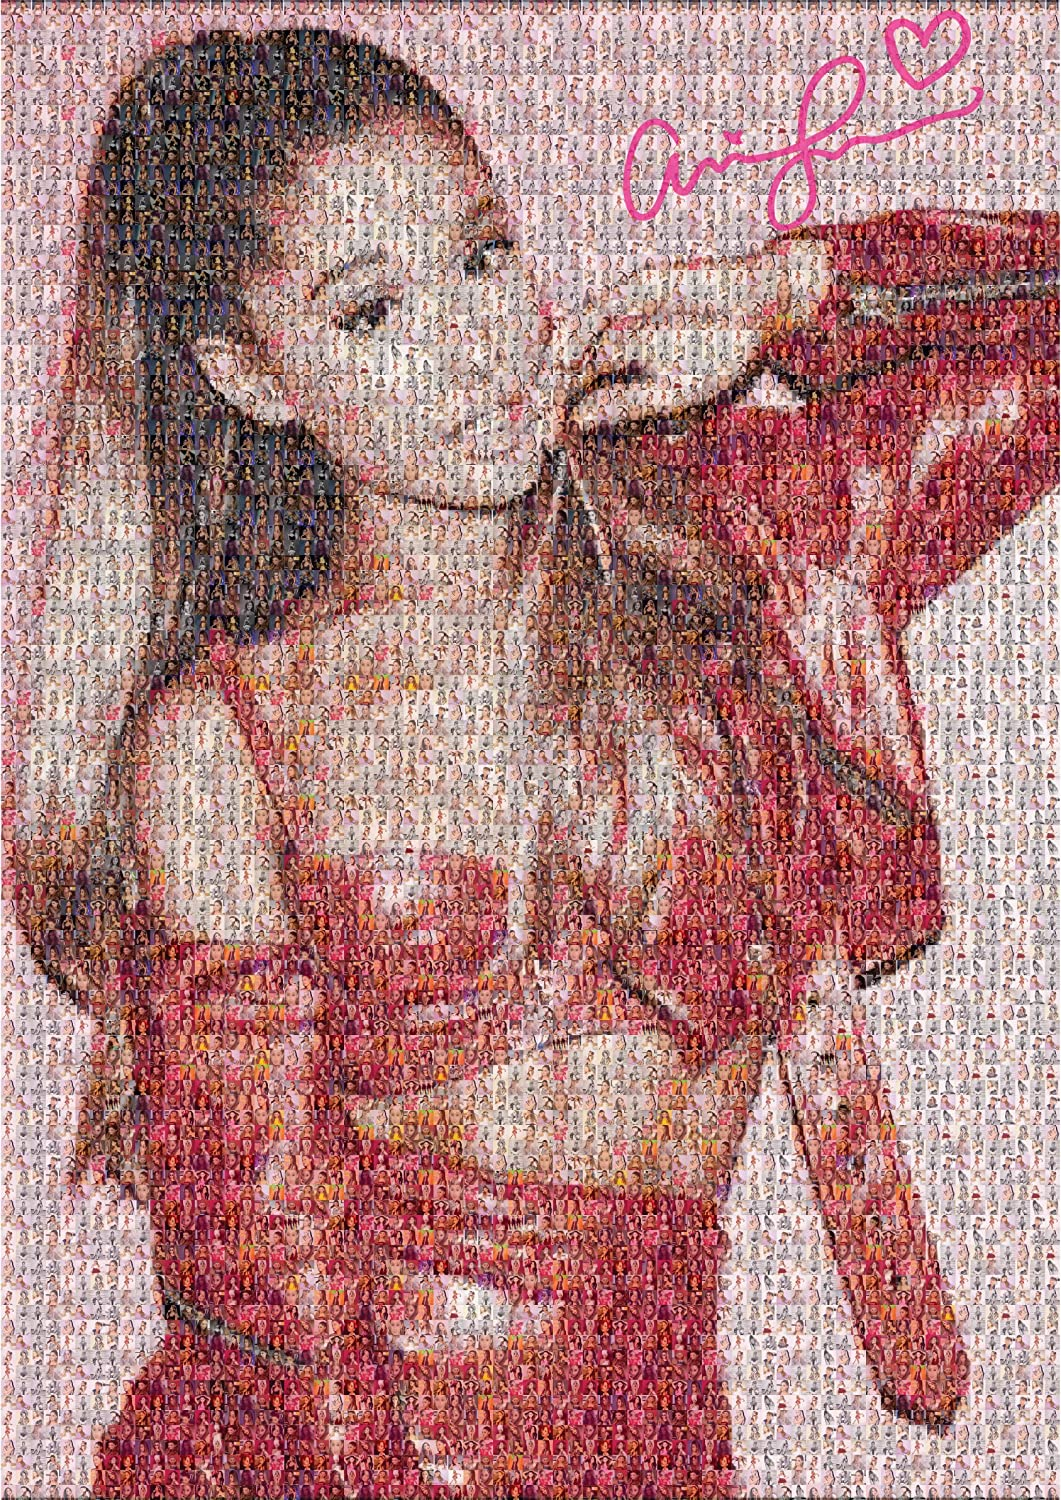 ARIANA GRANDE GLOSSY WALL ART POSTER A1 - A5 SIZES AVAILABLE